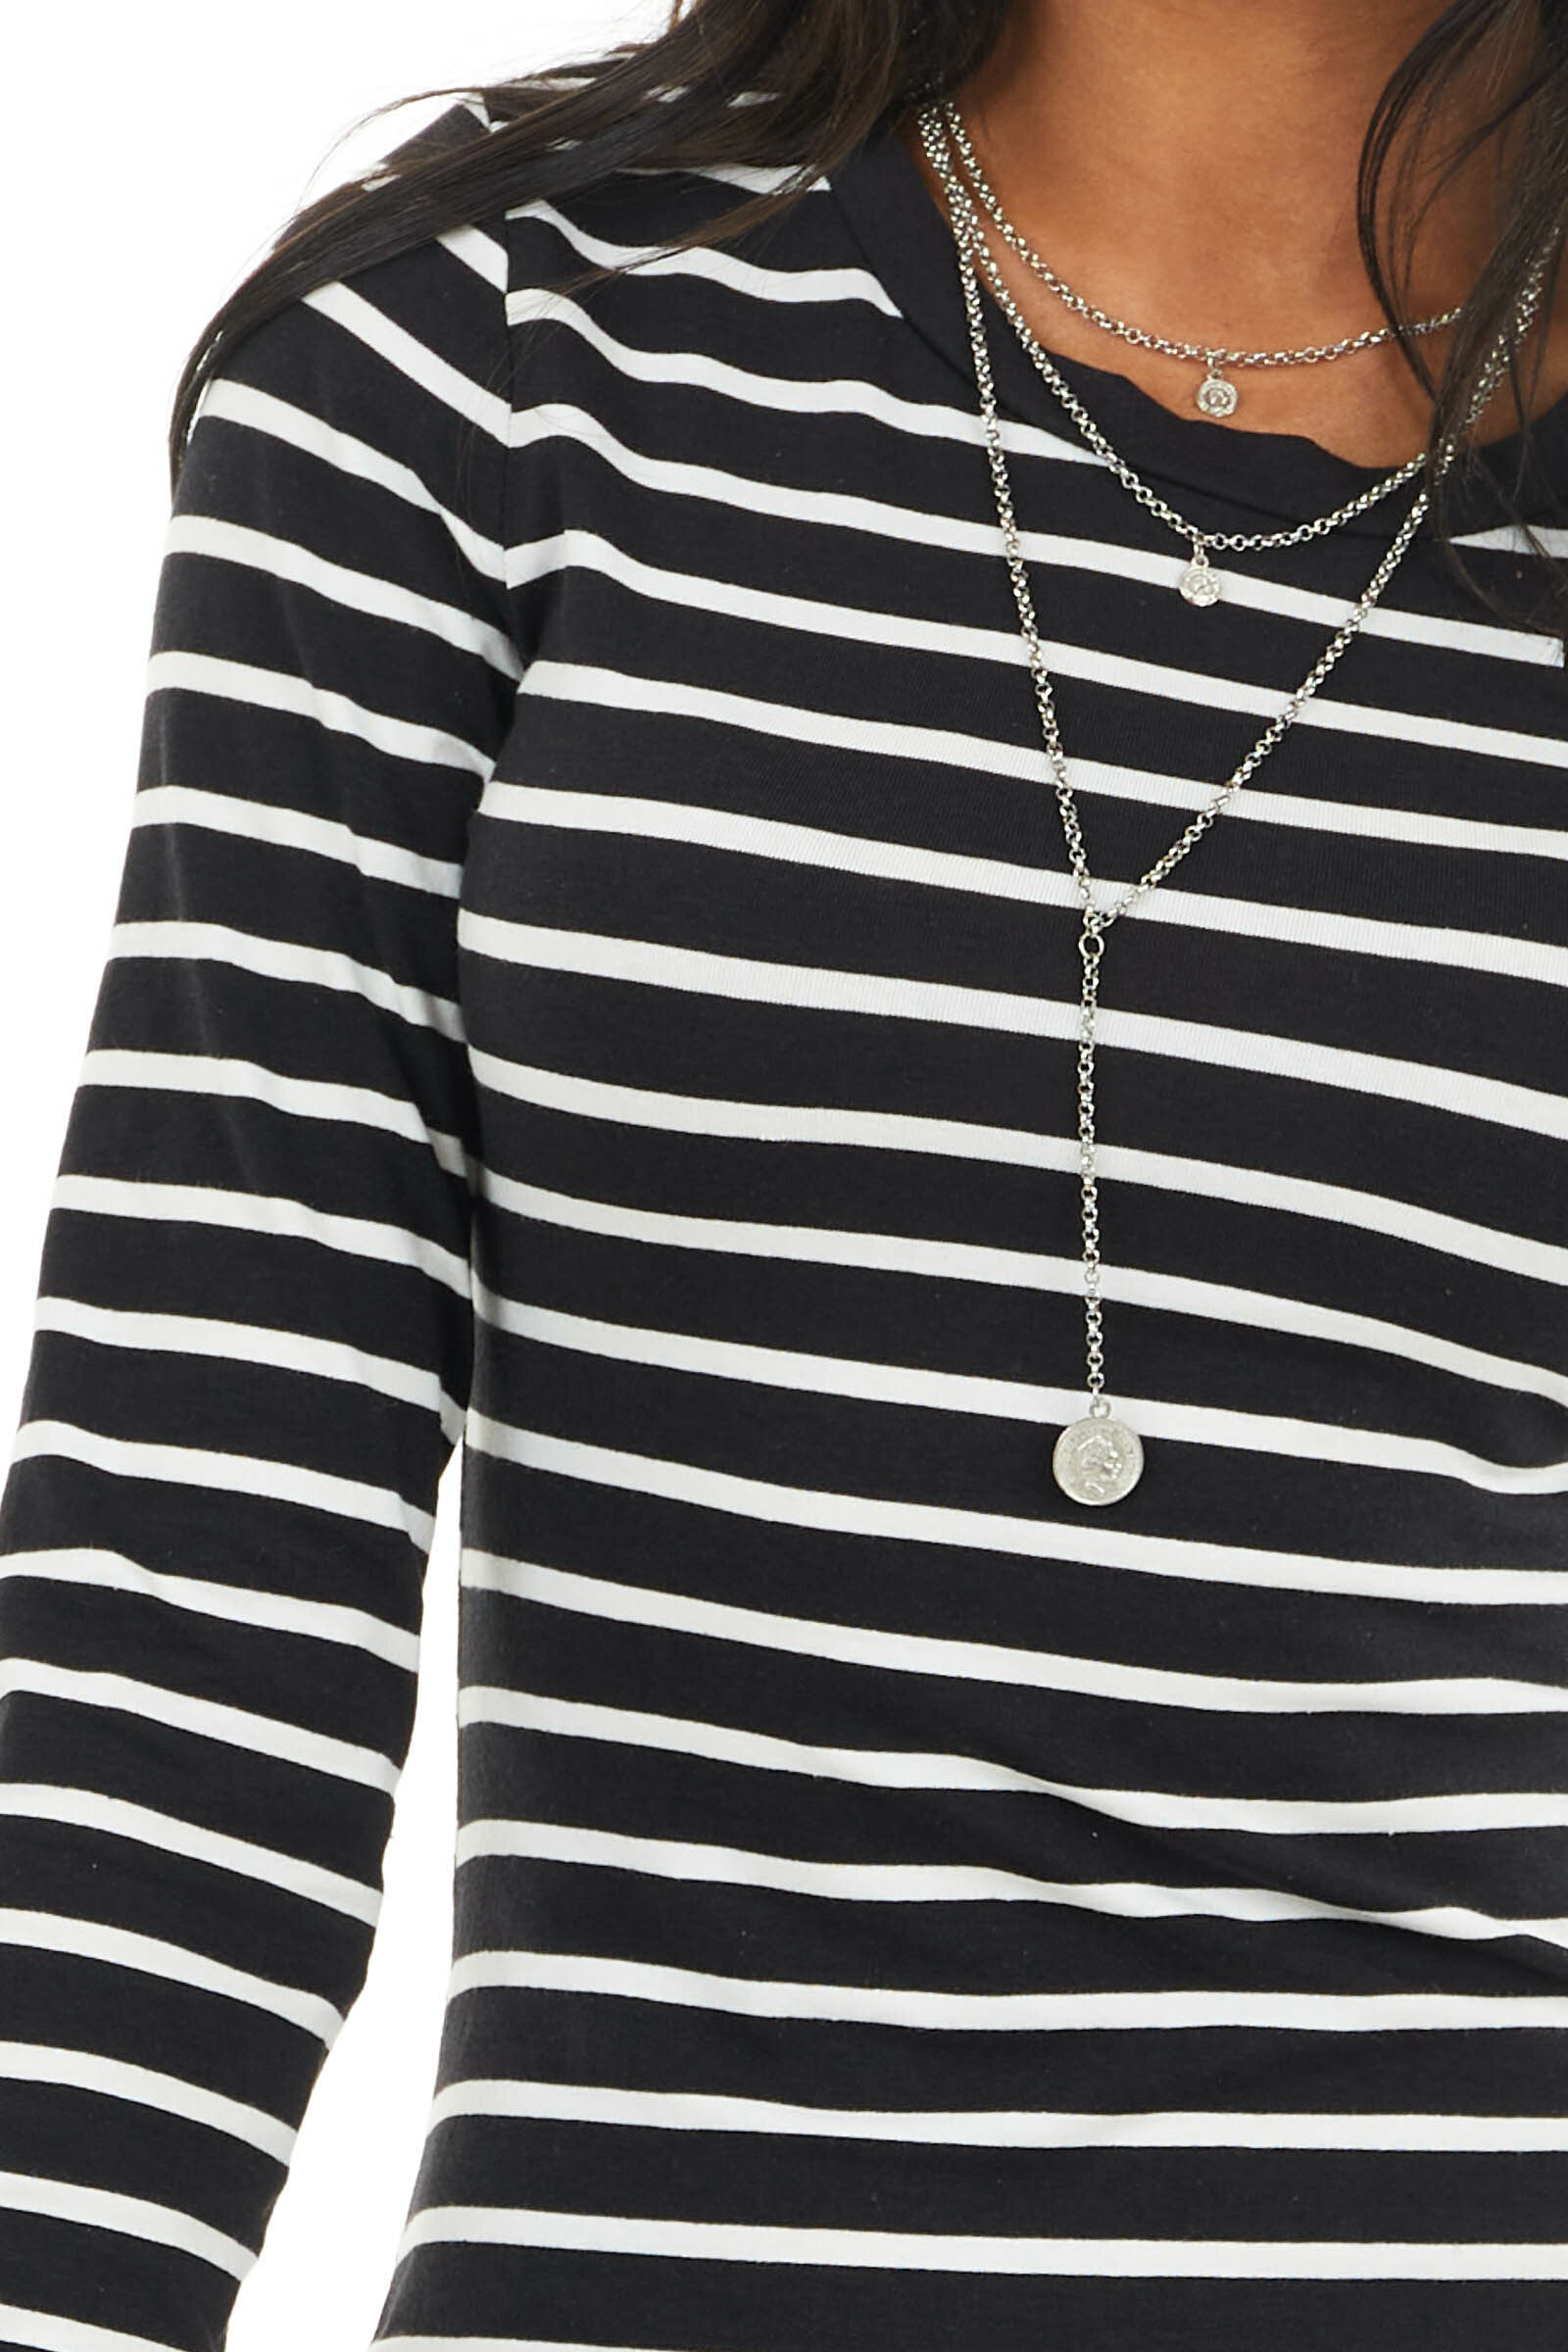 Black and White Striped Mini Dress with Long Sleeves